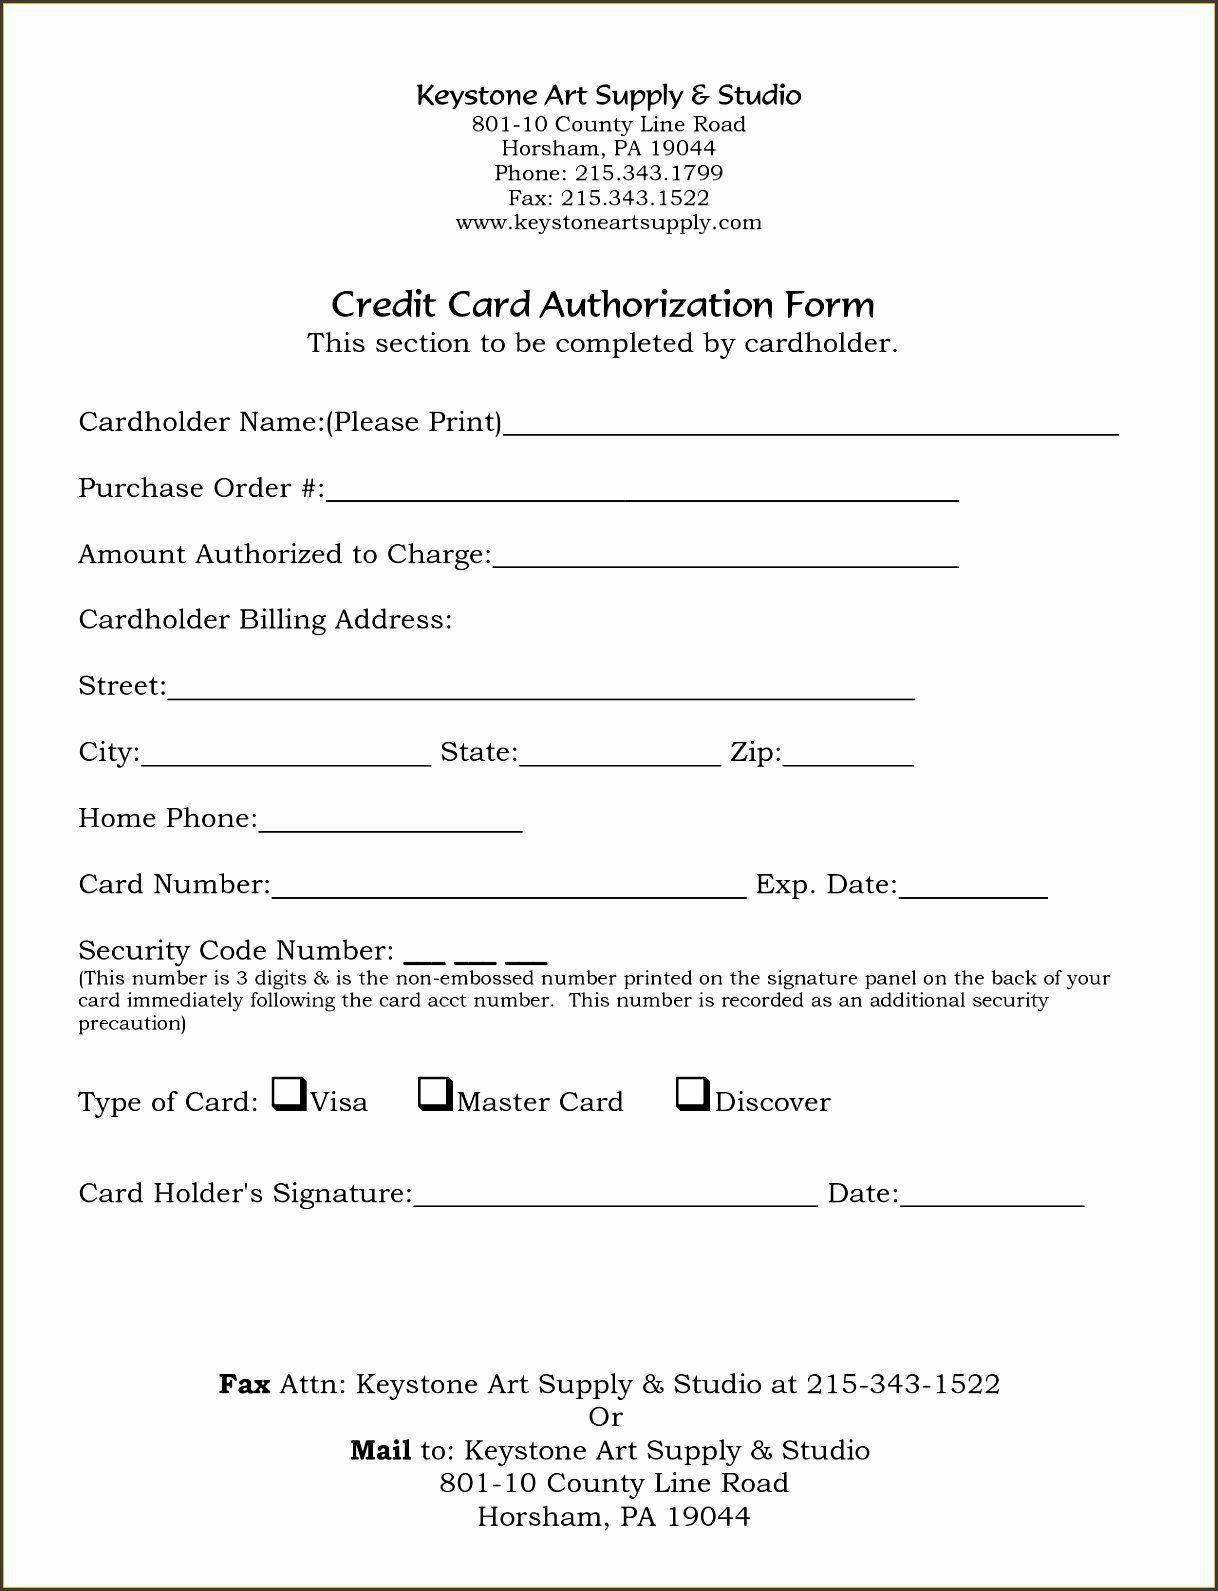 004 Shocking Credit Card Form Template Excel High Def  Authorization PaymentFull